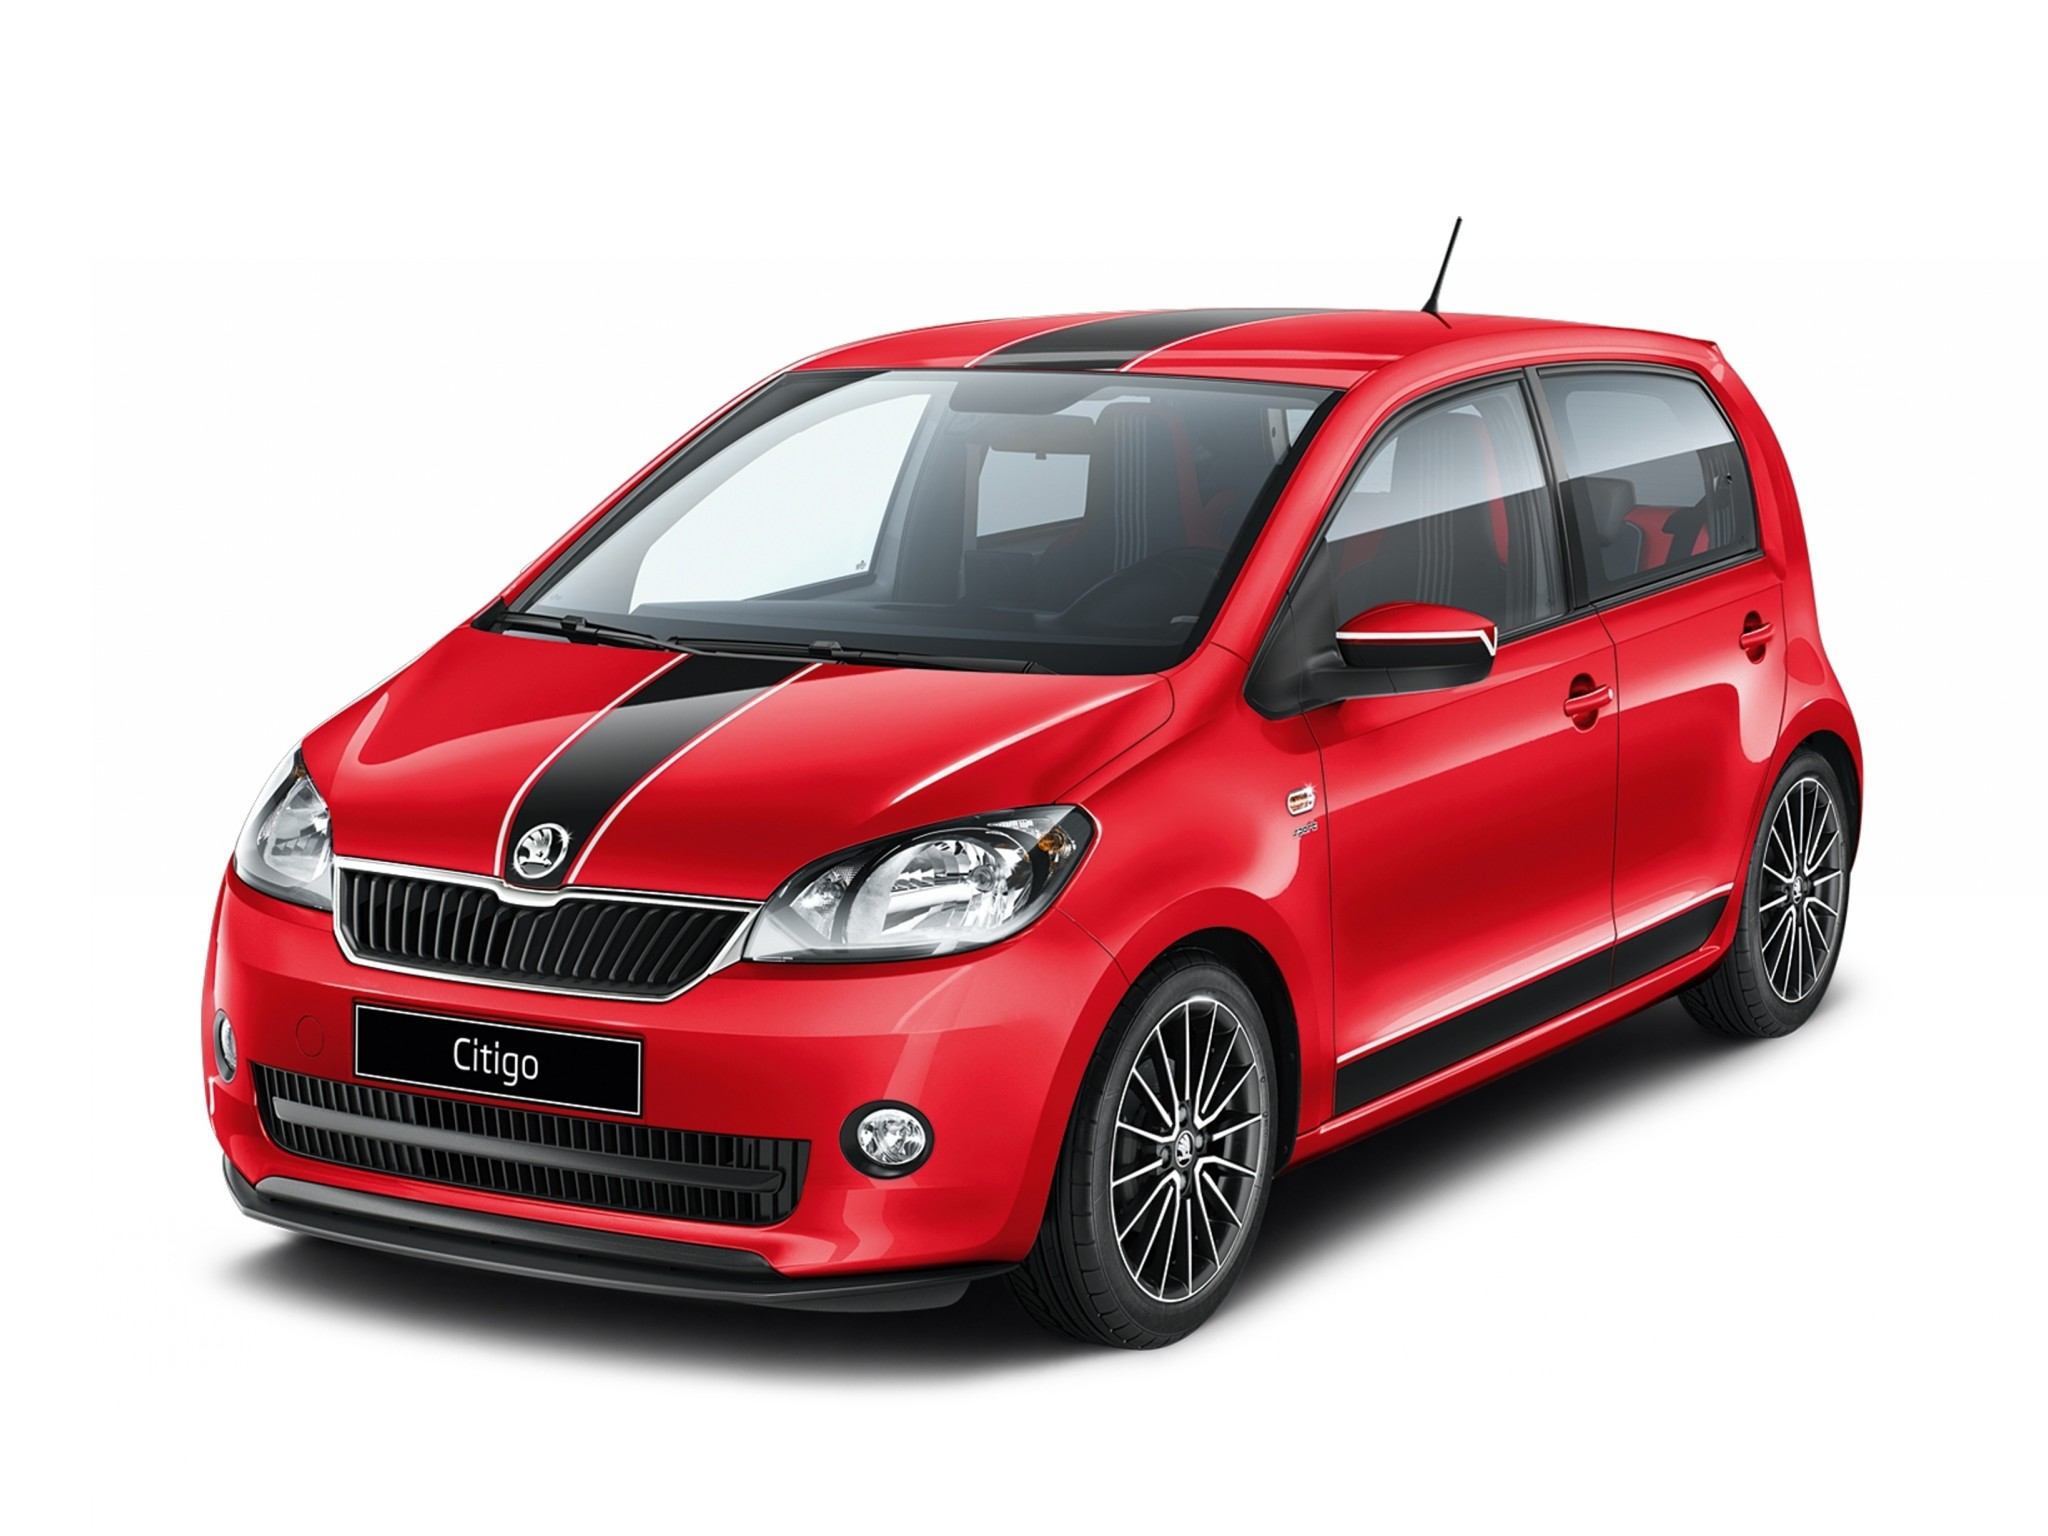 skoda citigo monte carlo launched with rally ace looks and. Black Bedroom Furniture Sets. Home Design Ideas